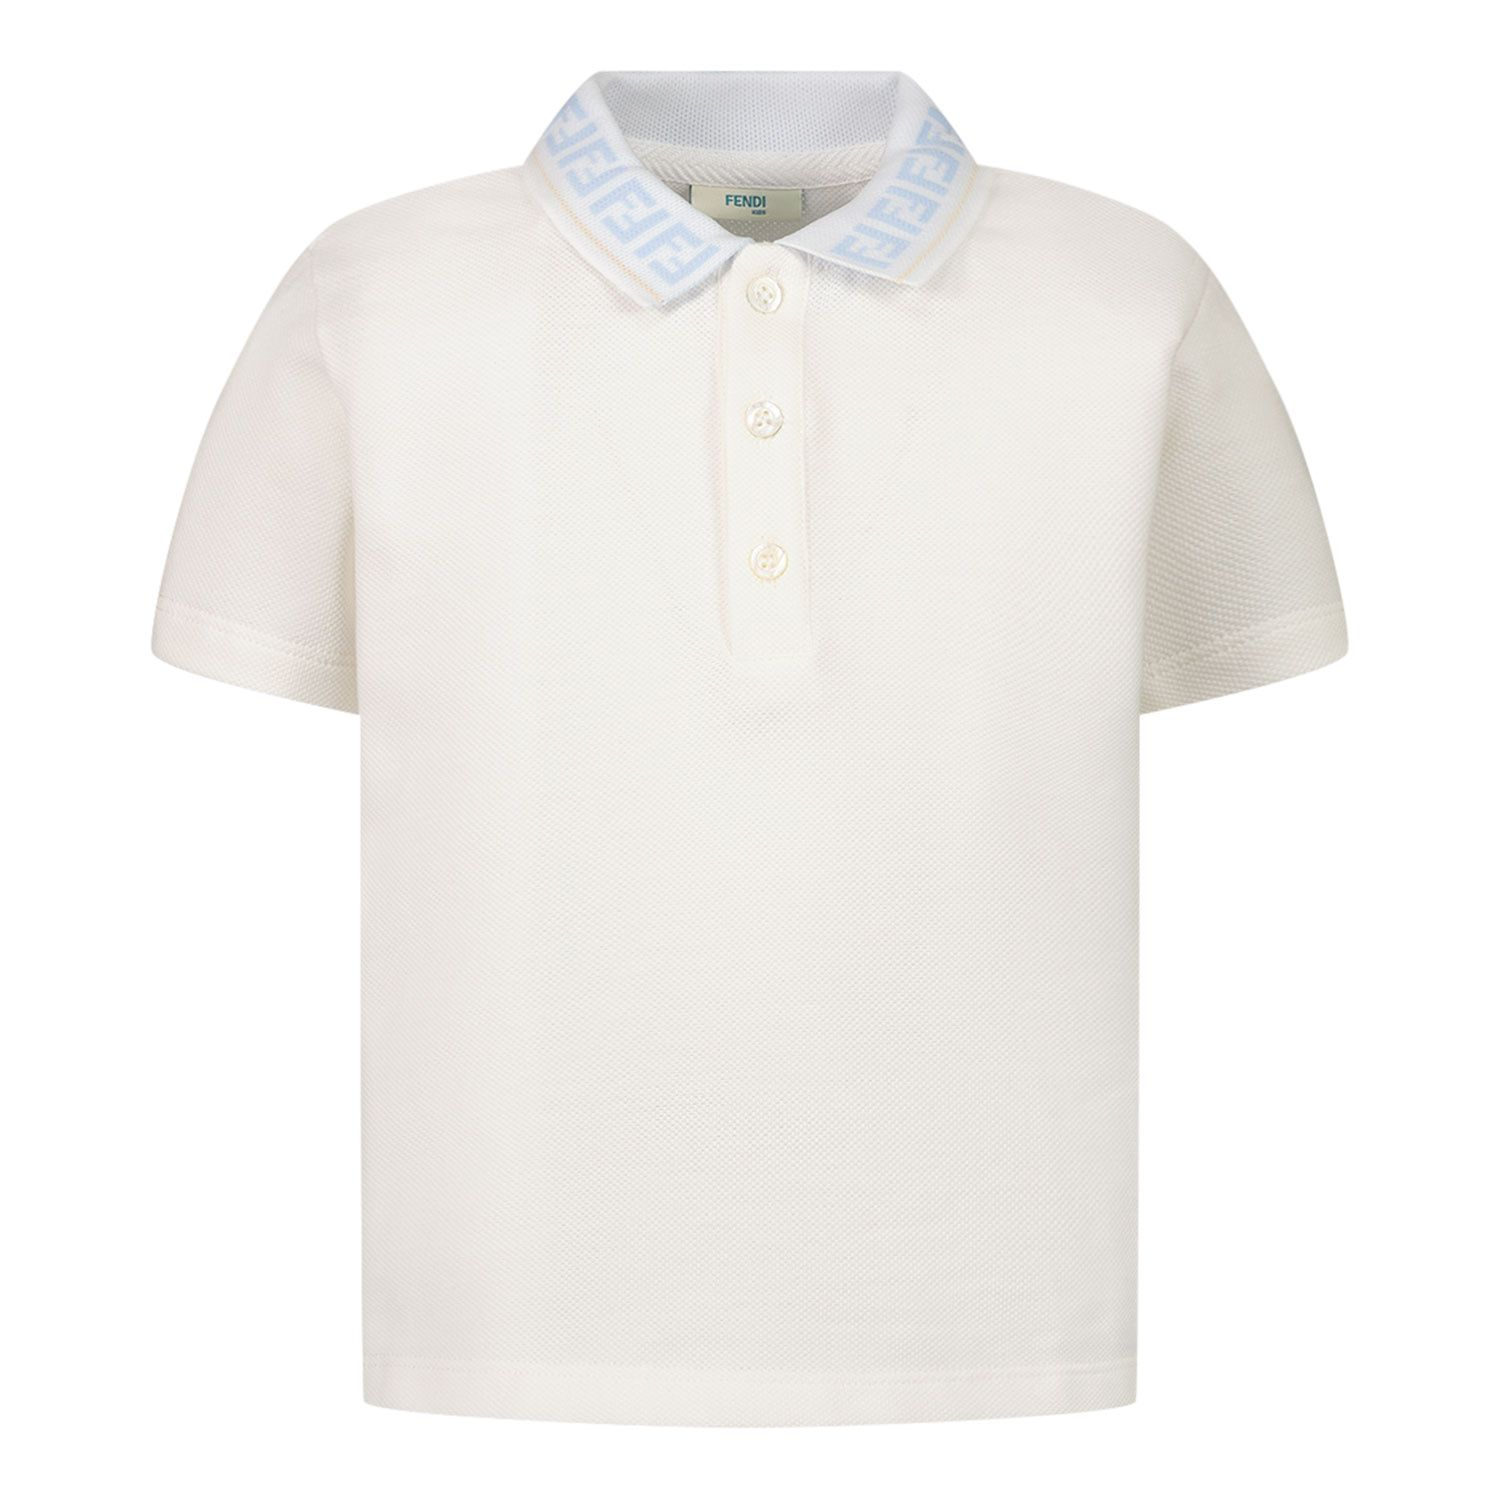 Picture of Fendi BMI218 AVP baby poloshirt white